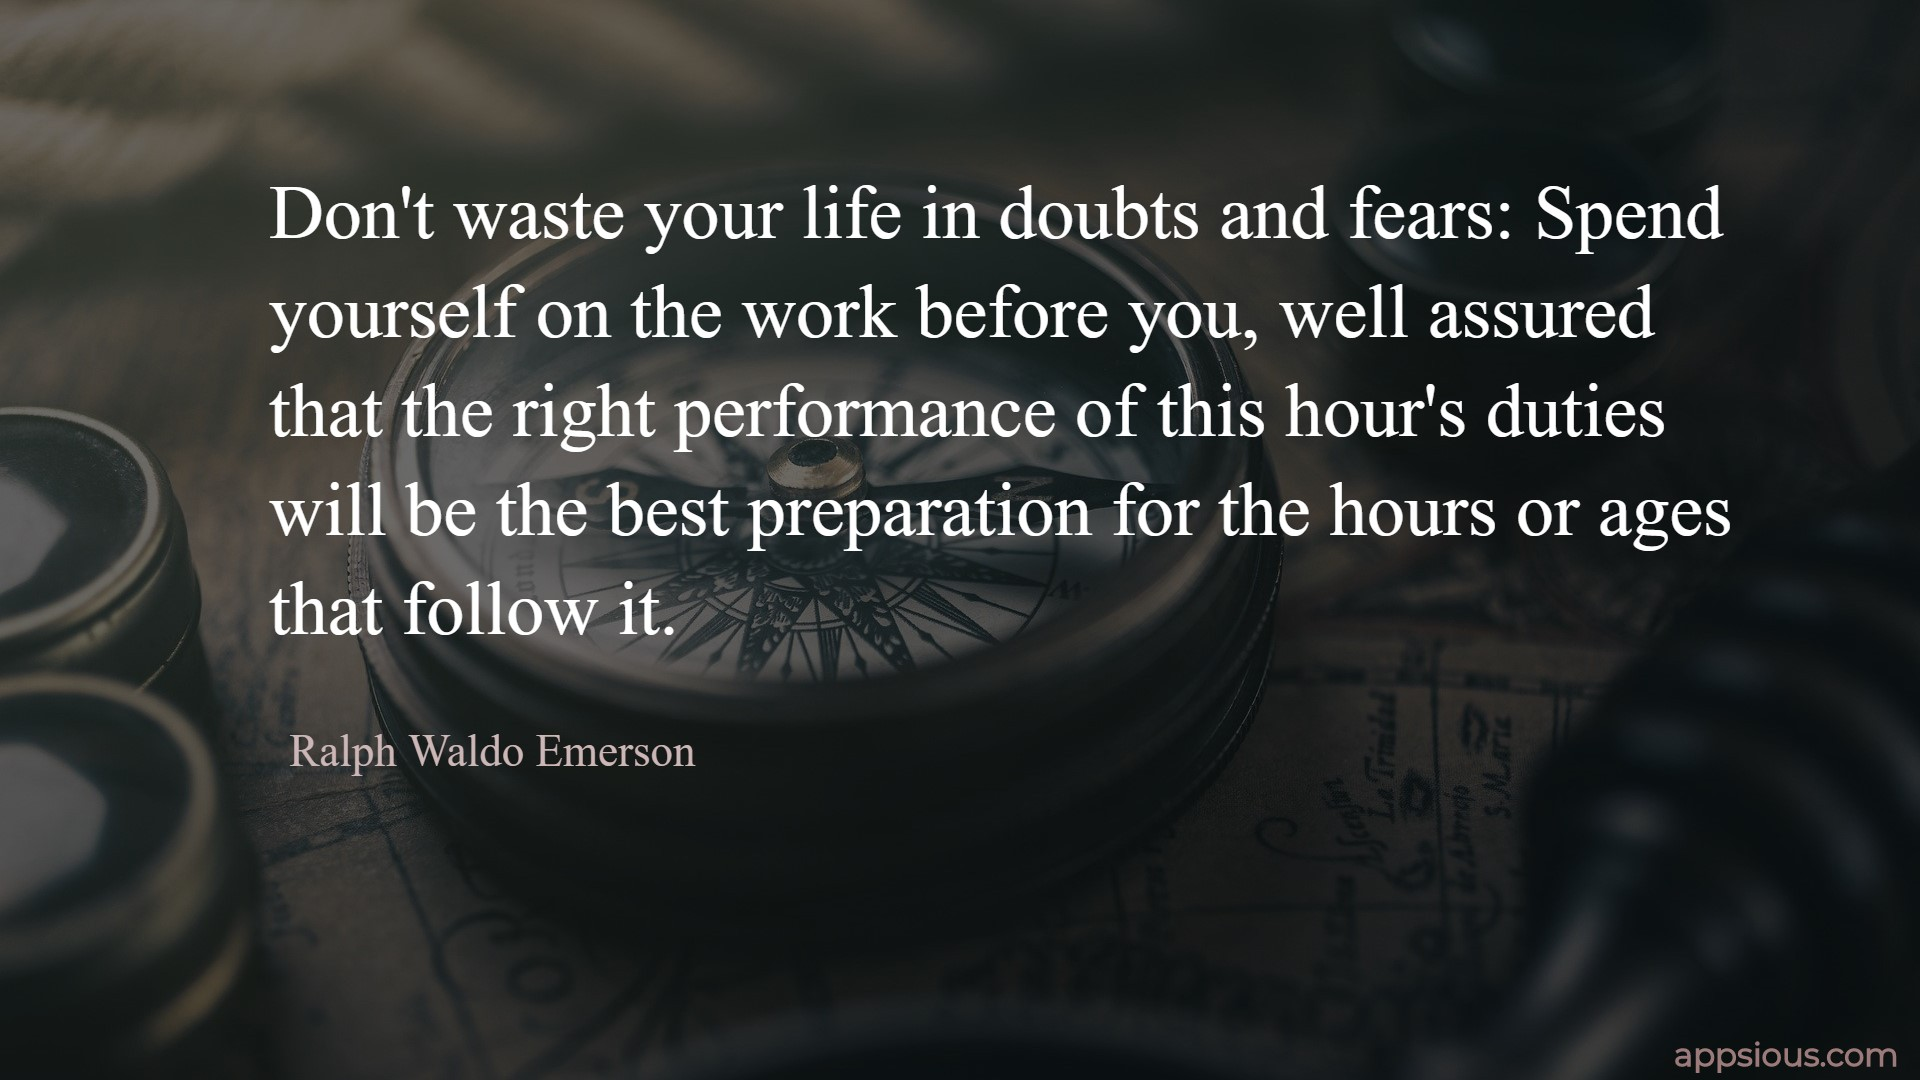 Don't waste your life in doubts and fears: Spend yourself on the work before you, well assured that the right performance of this hour's duties will be the best preparation for the hours or ages that follow it.